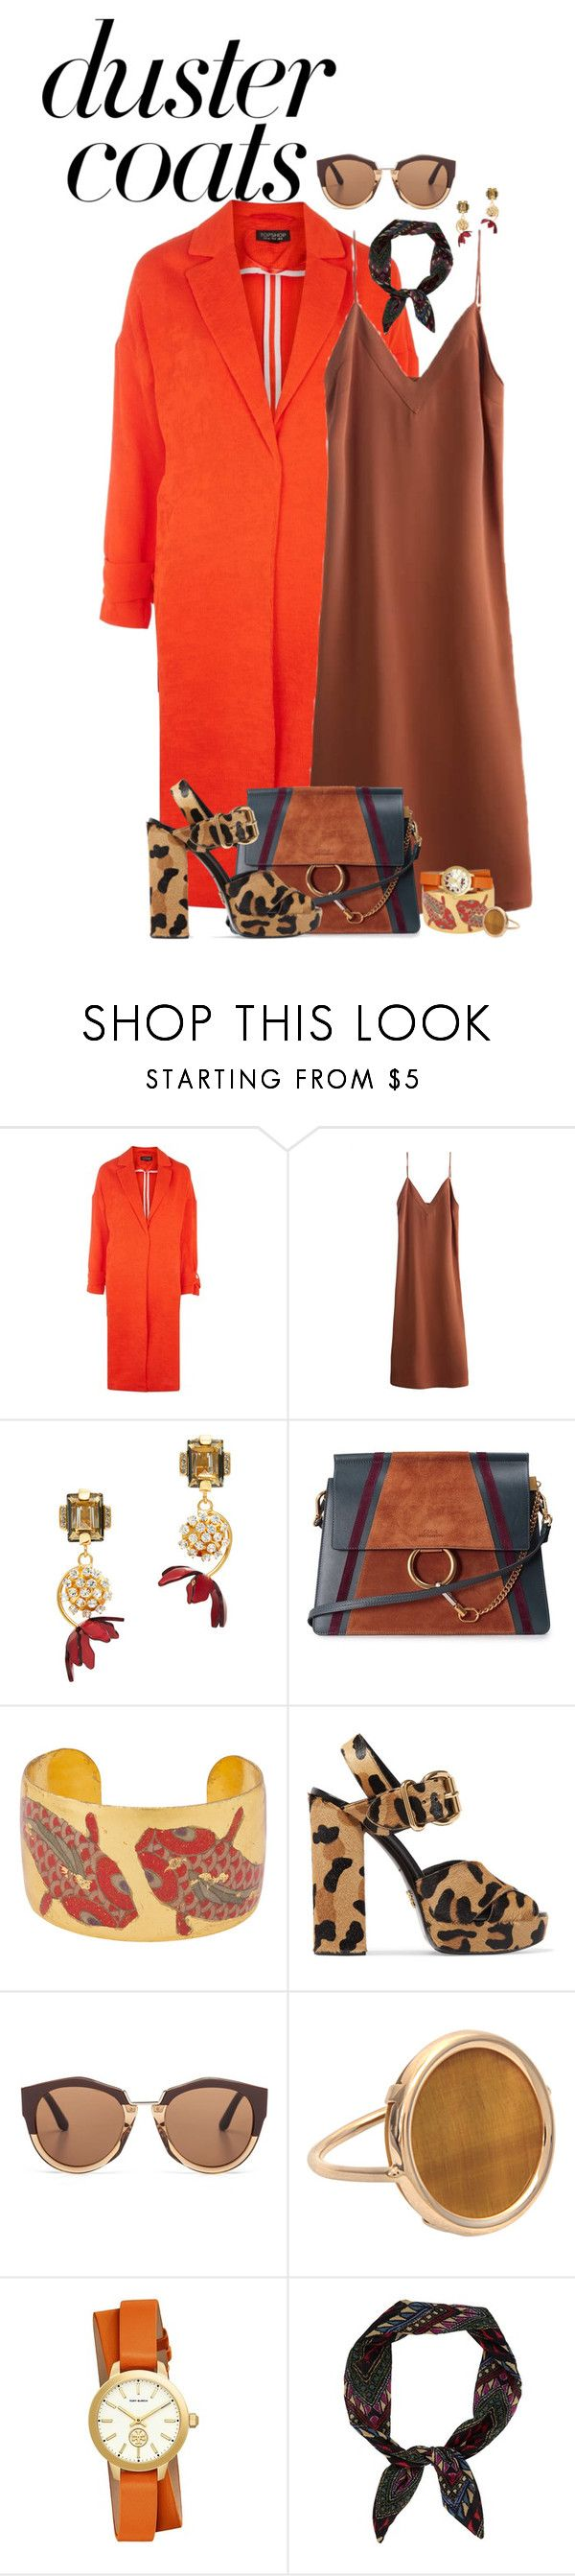 """""""should be good"""" by fantasia-fashion ❤ liked on Polyvore featuring Topshop, Marni, Chloé, Évocateur, Prada, Ginette NY, Tory Burch, contest and DusterCoats"""